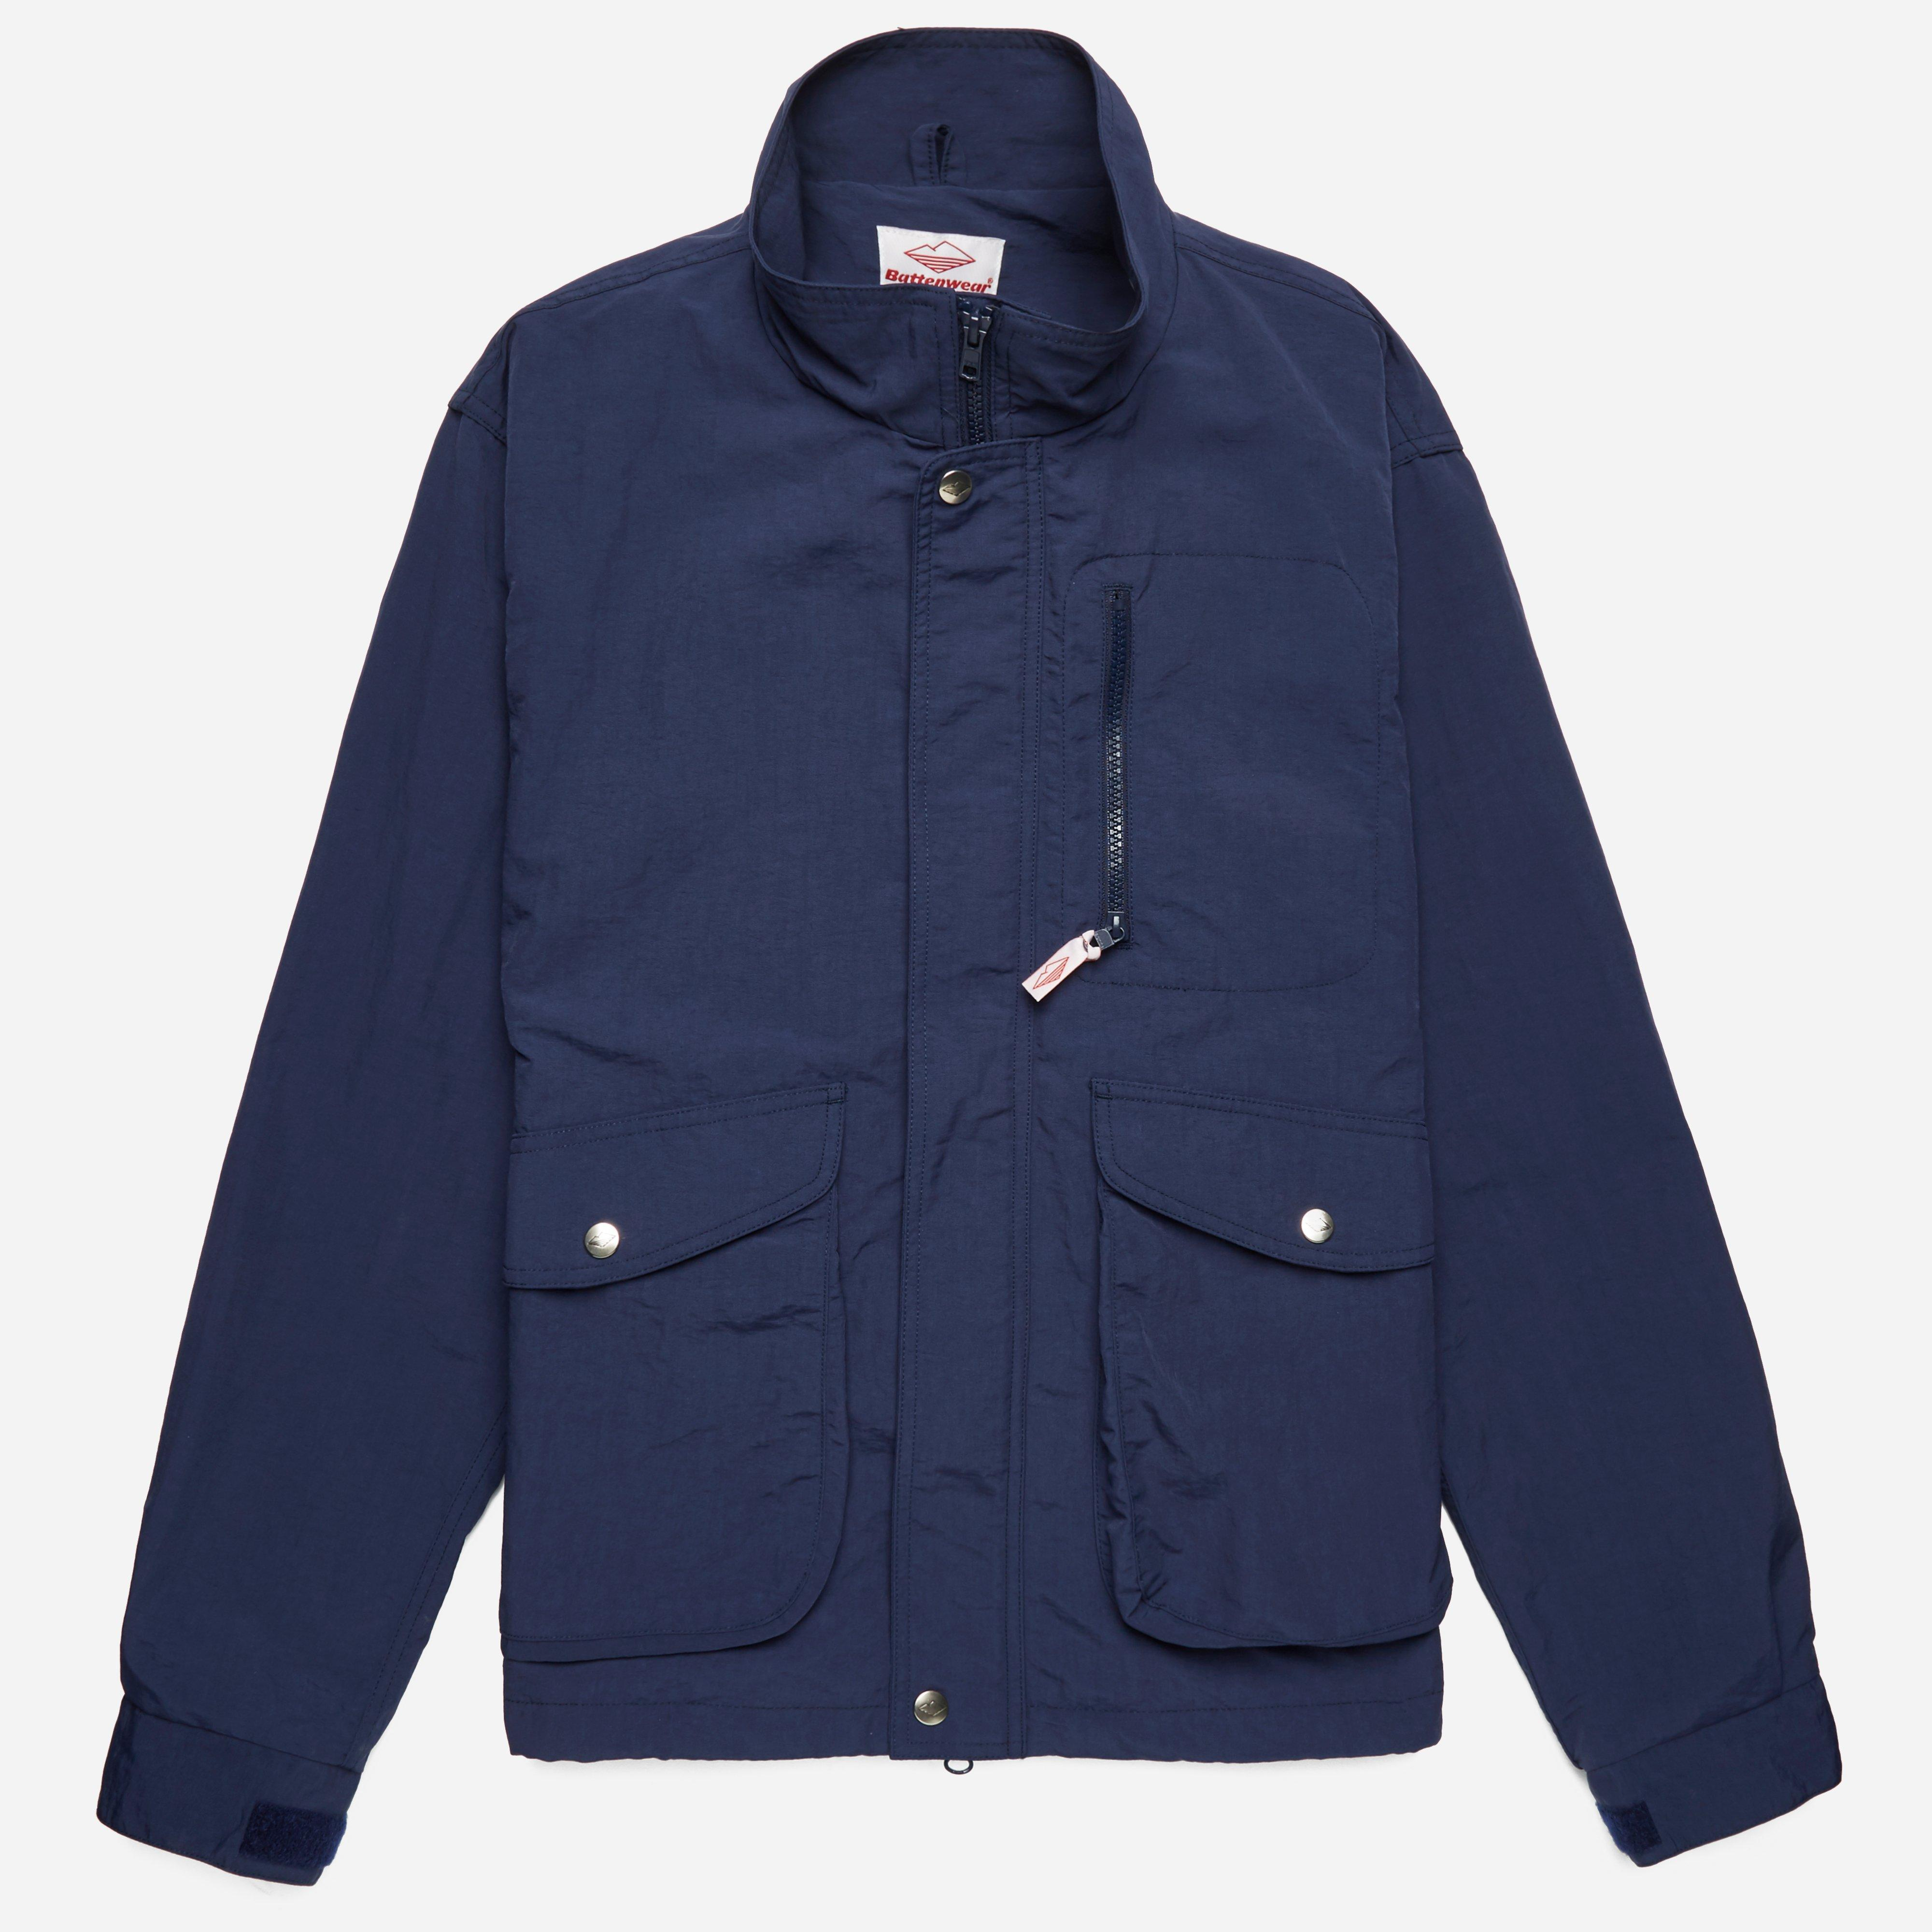 Battenwear Weekend Jacket